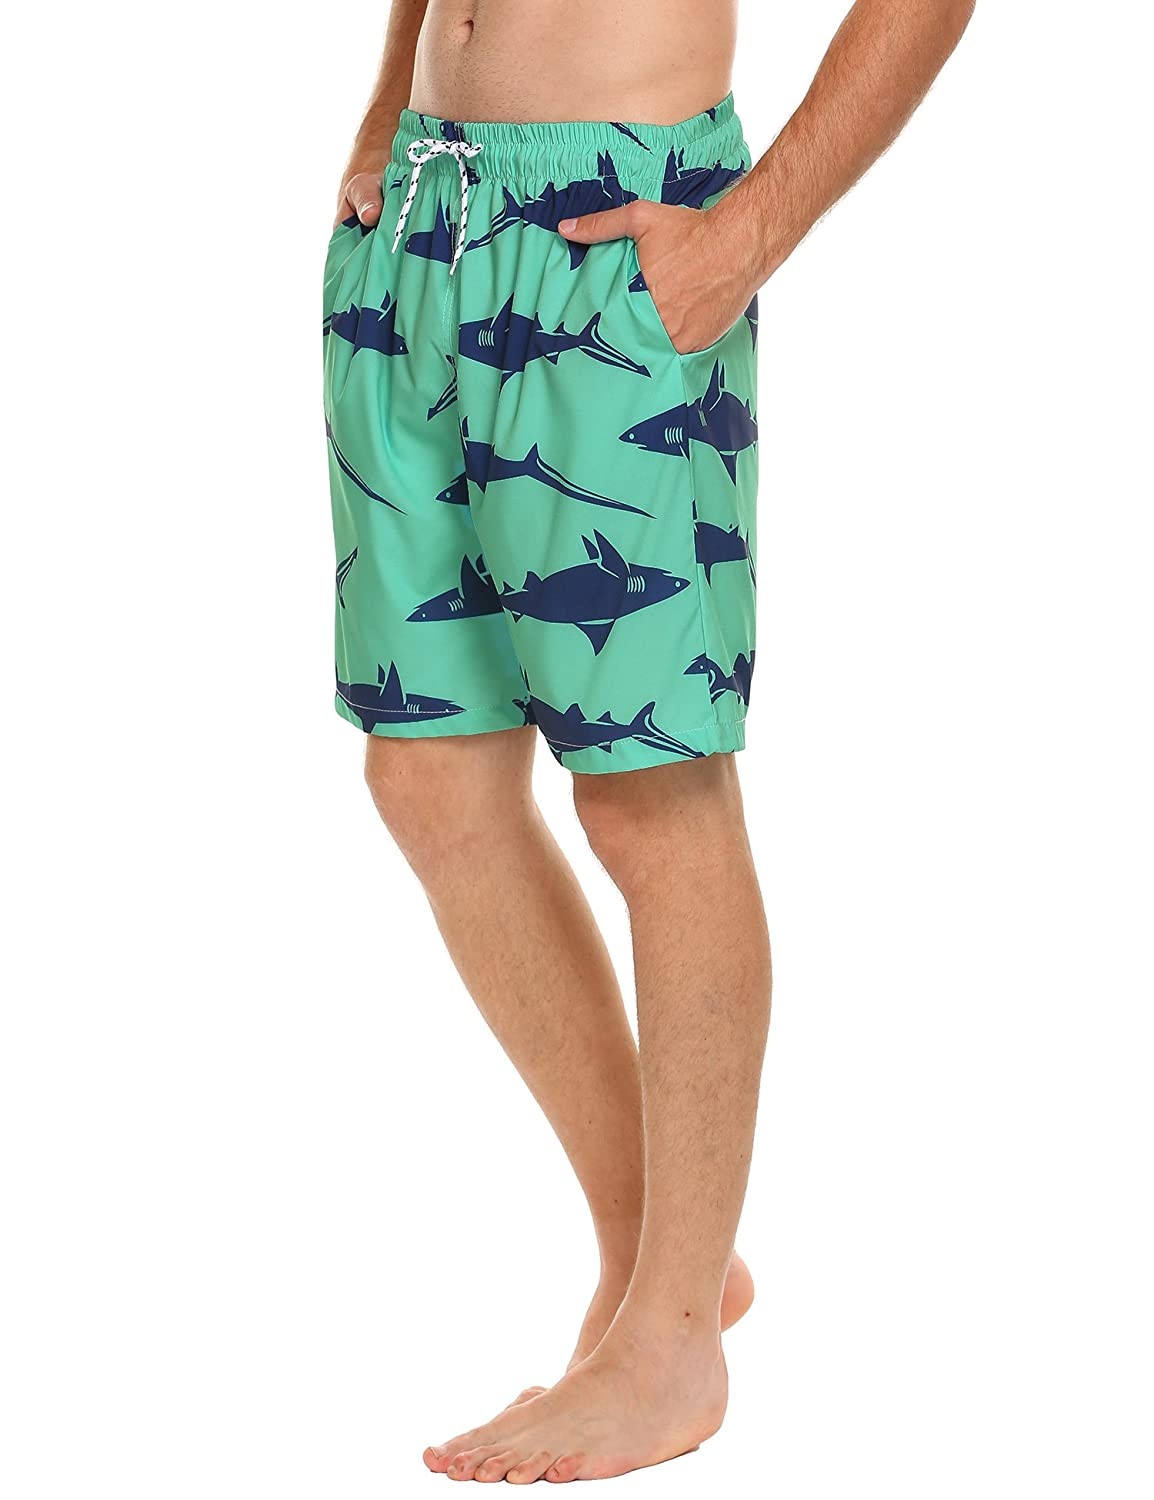 COOFANDY Mens Swim Trunks Beach Board Shorts with Pockets, Elastic Waist, Mesh Lining